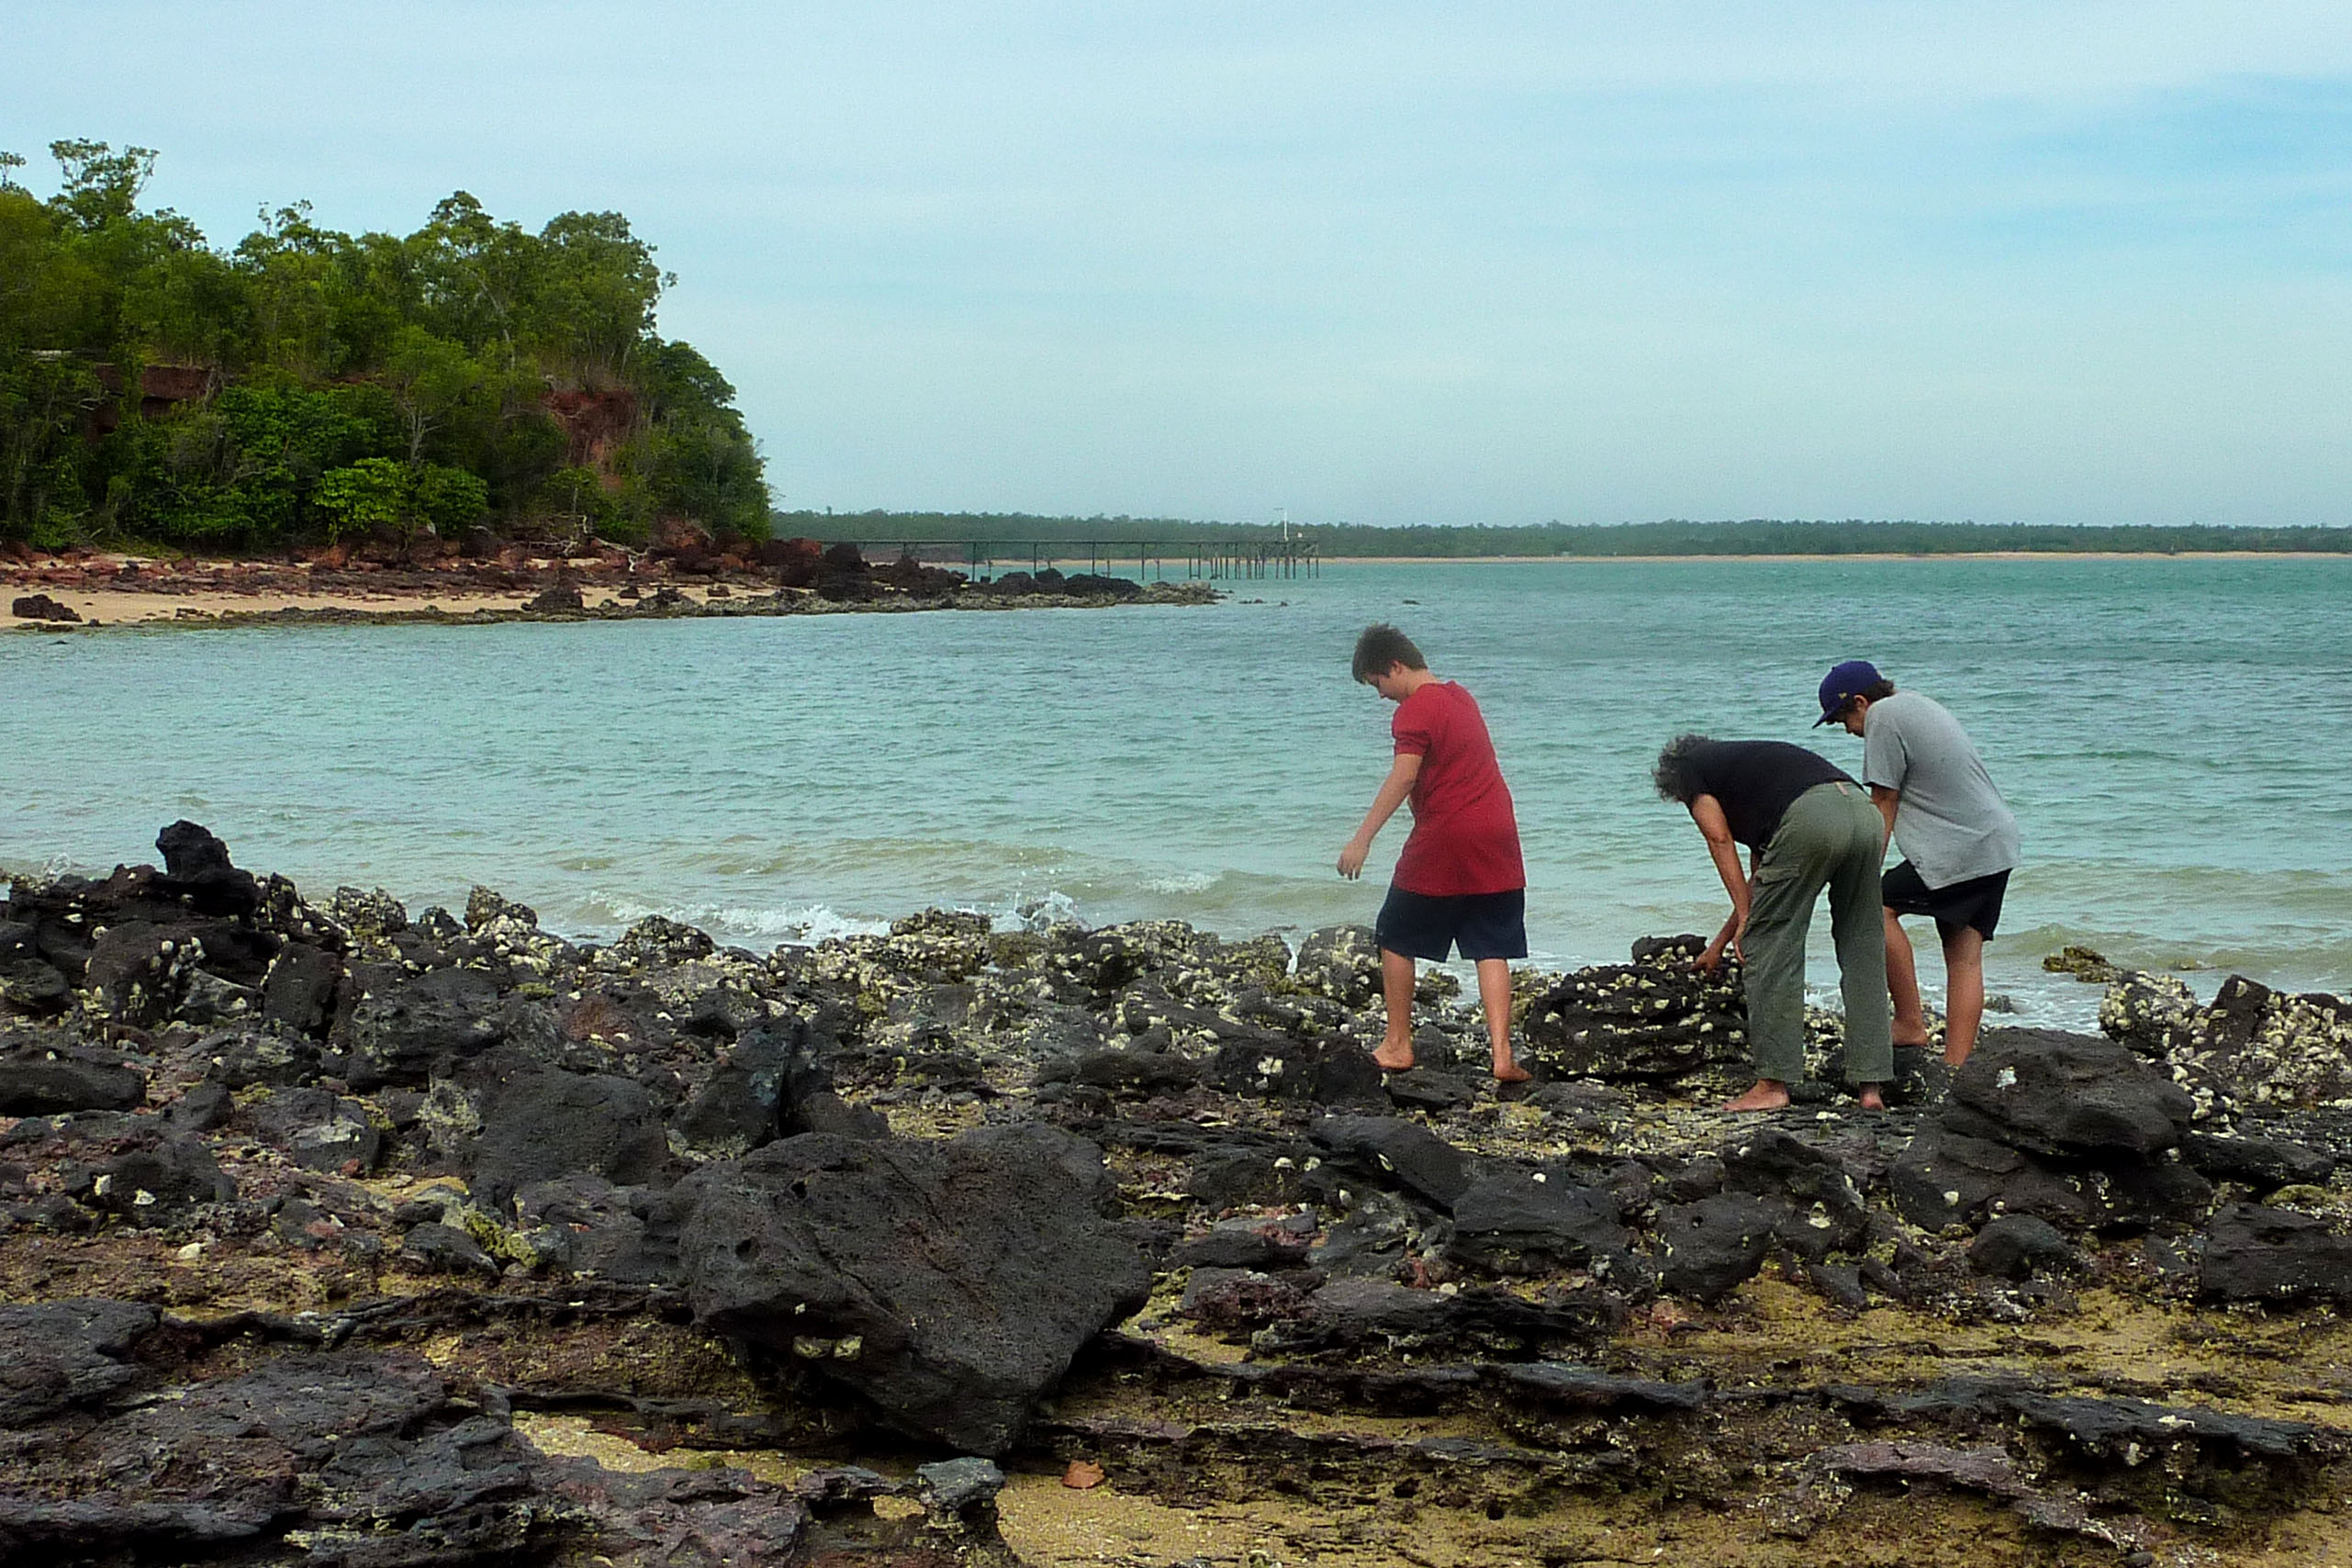 Harvesting oysters from the rocks at Black Point